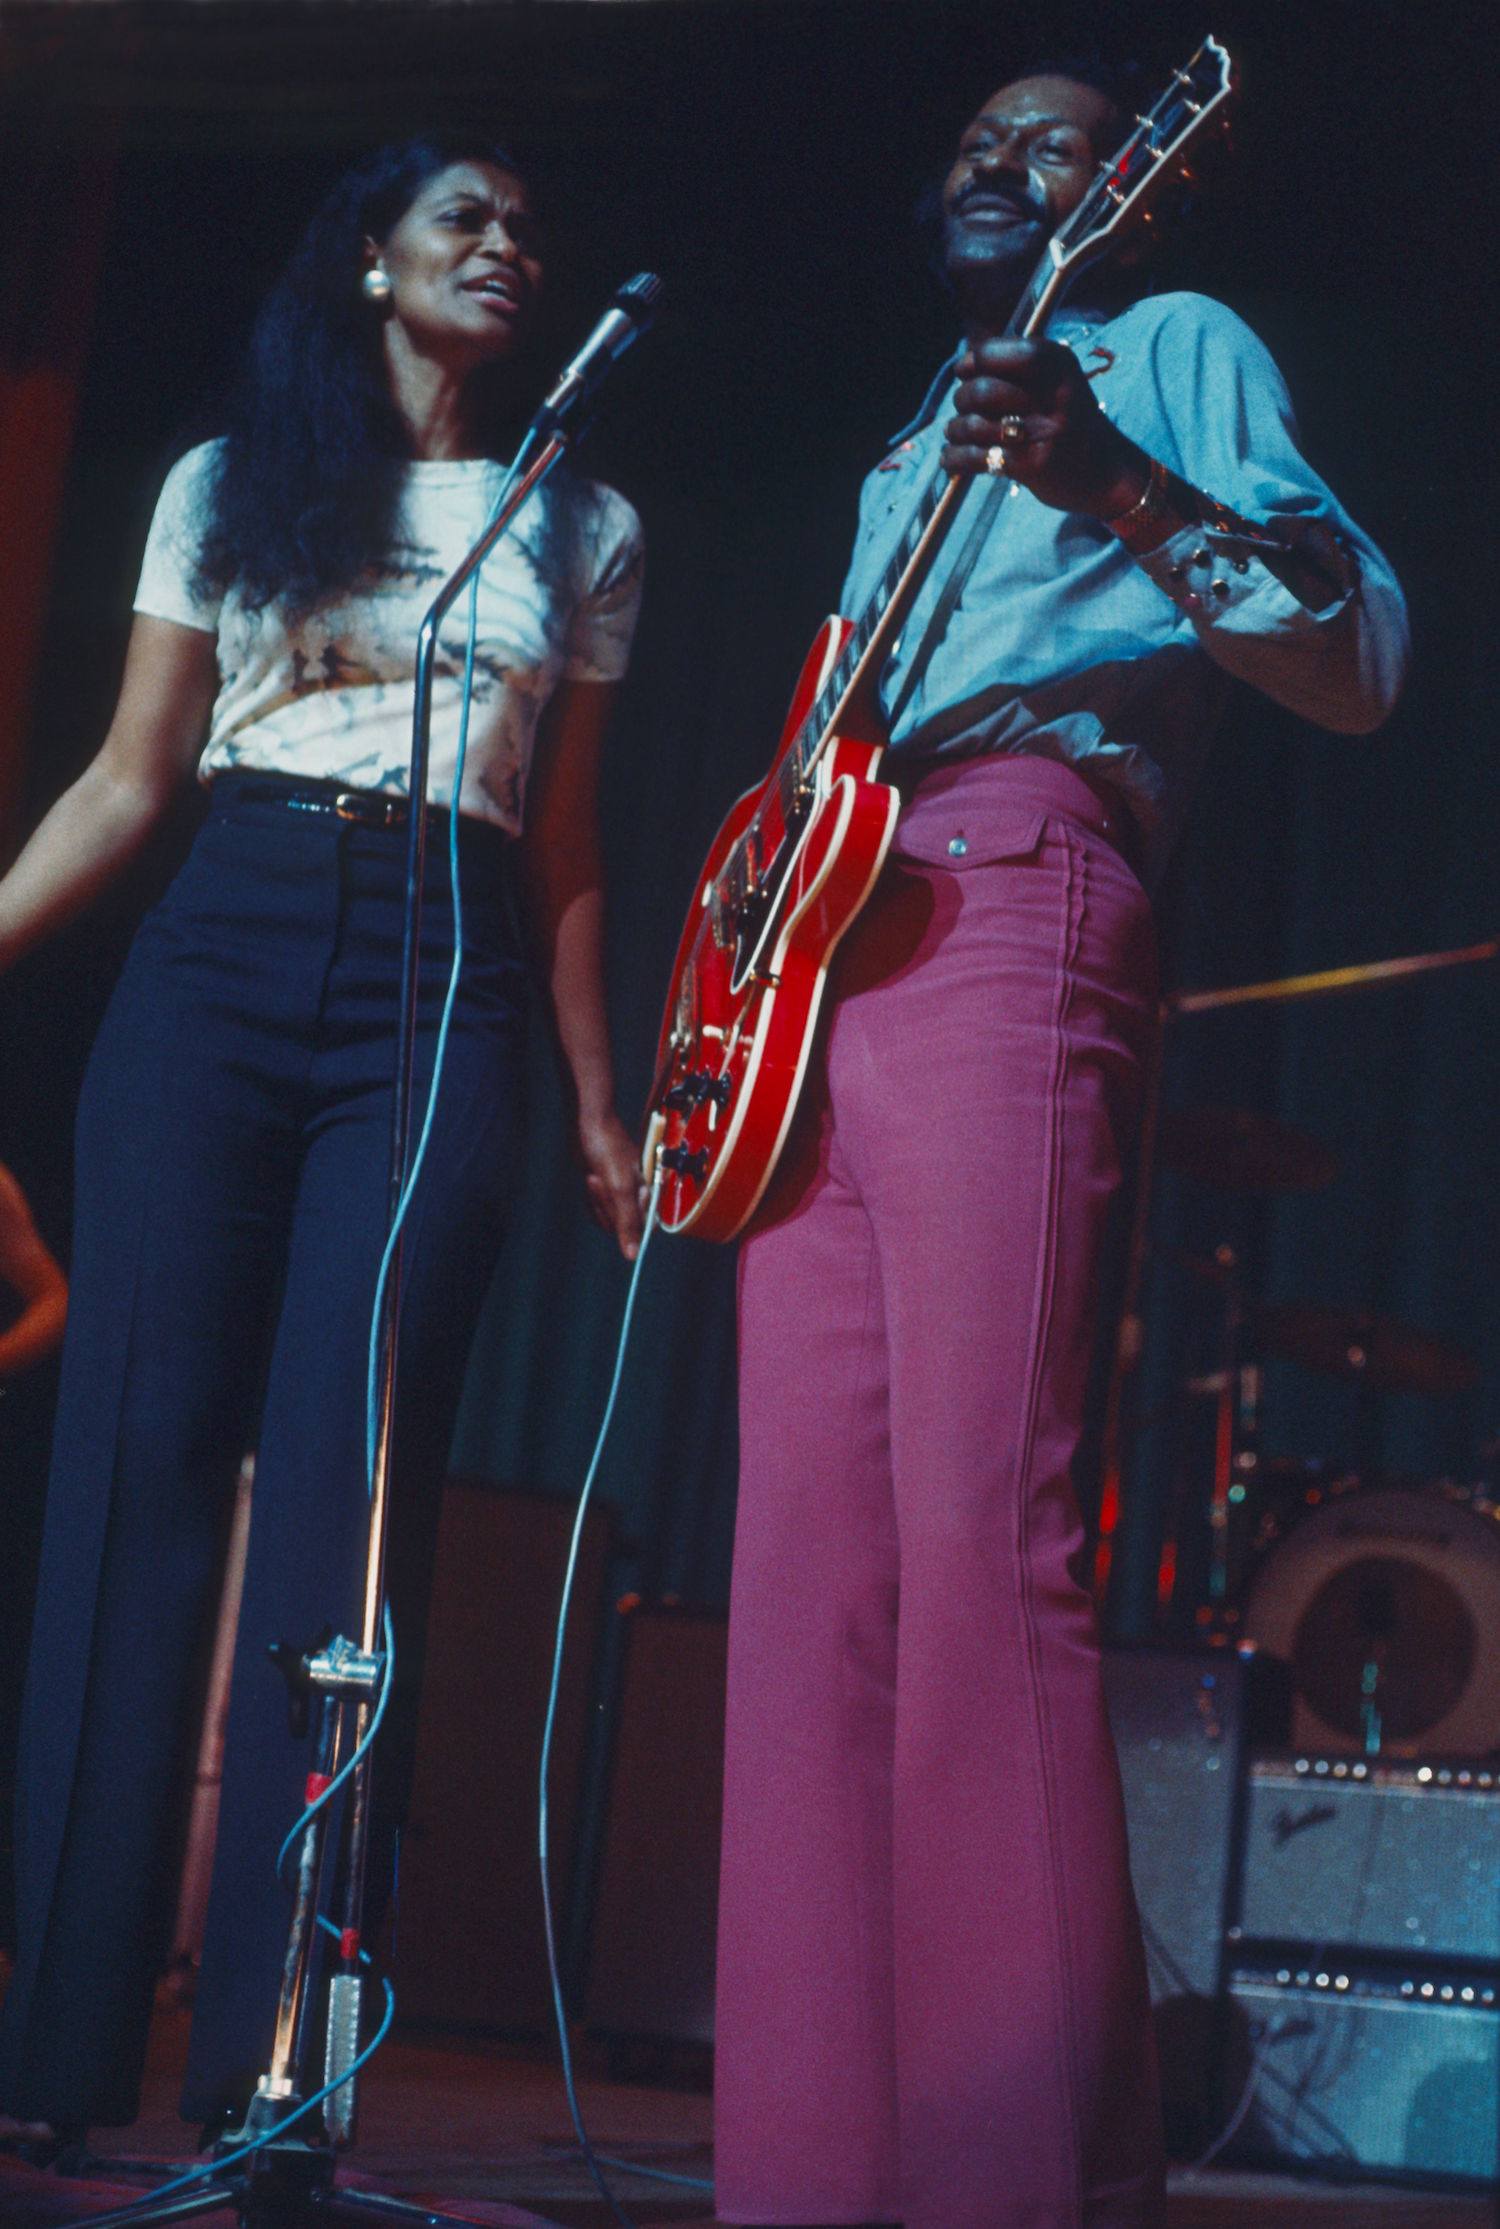 Chuck Berry in concert at Lewisham Odeon, London, Britain - Chuck Berry performing with daughter Ingrid Berry Clay - Feb, 1975